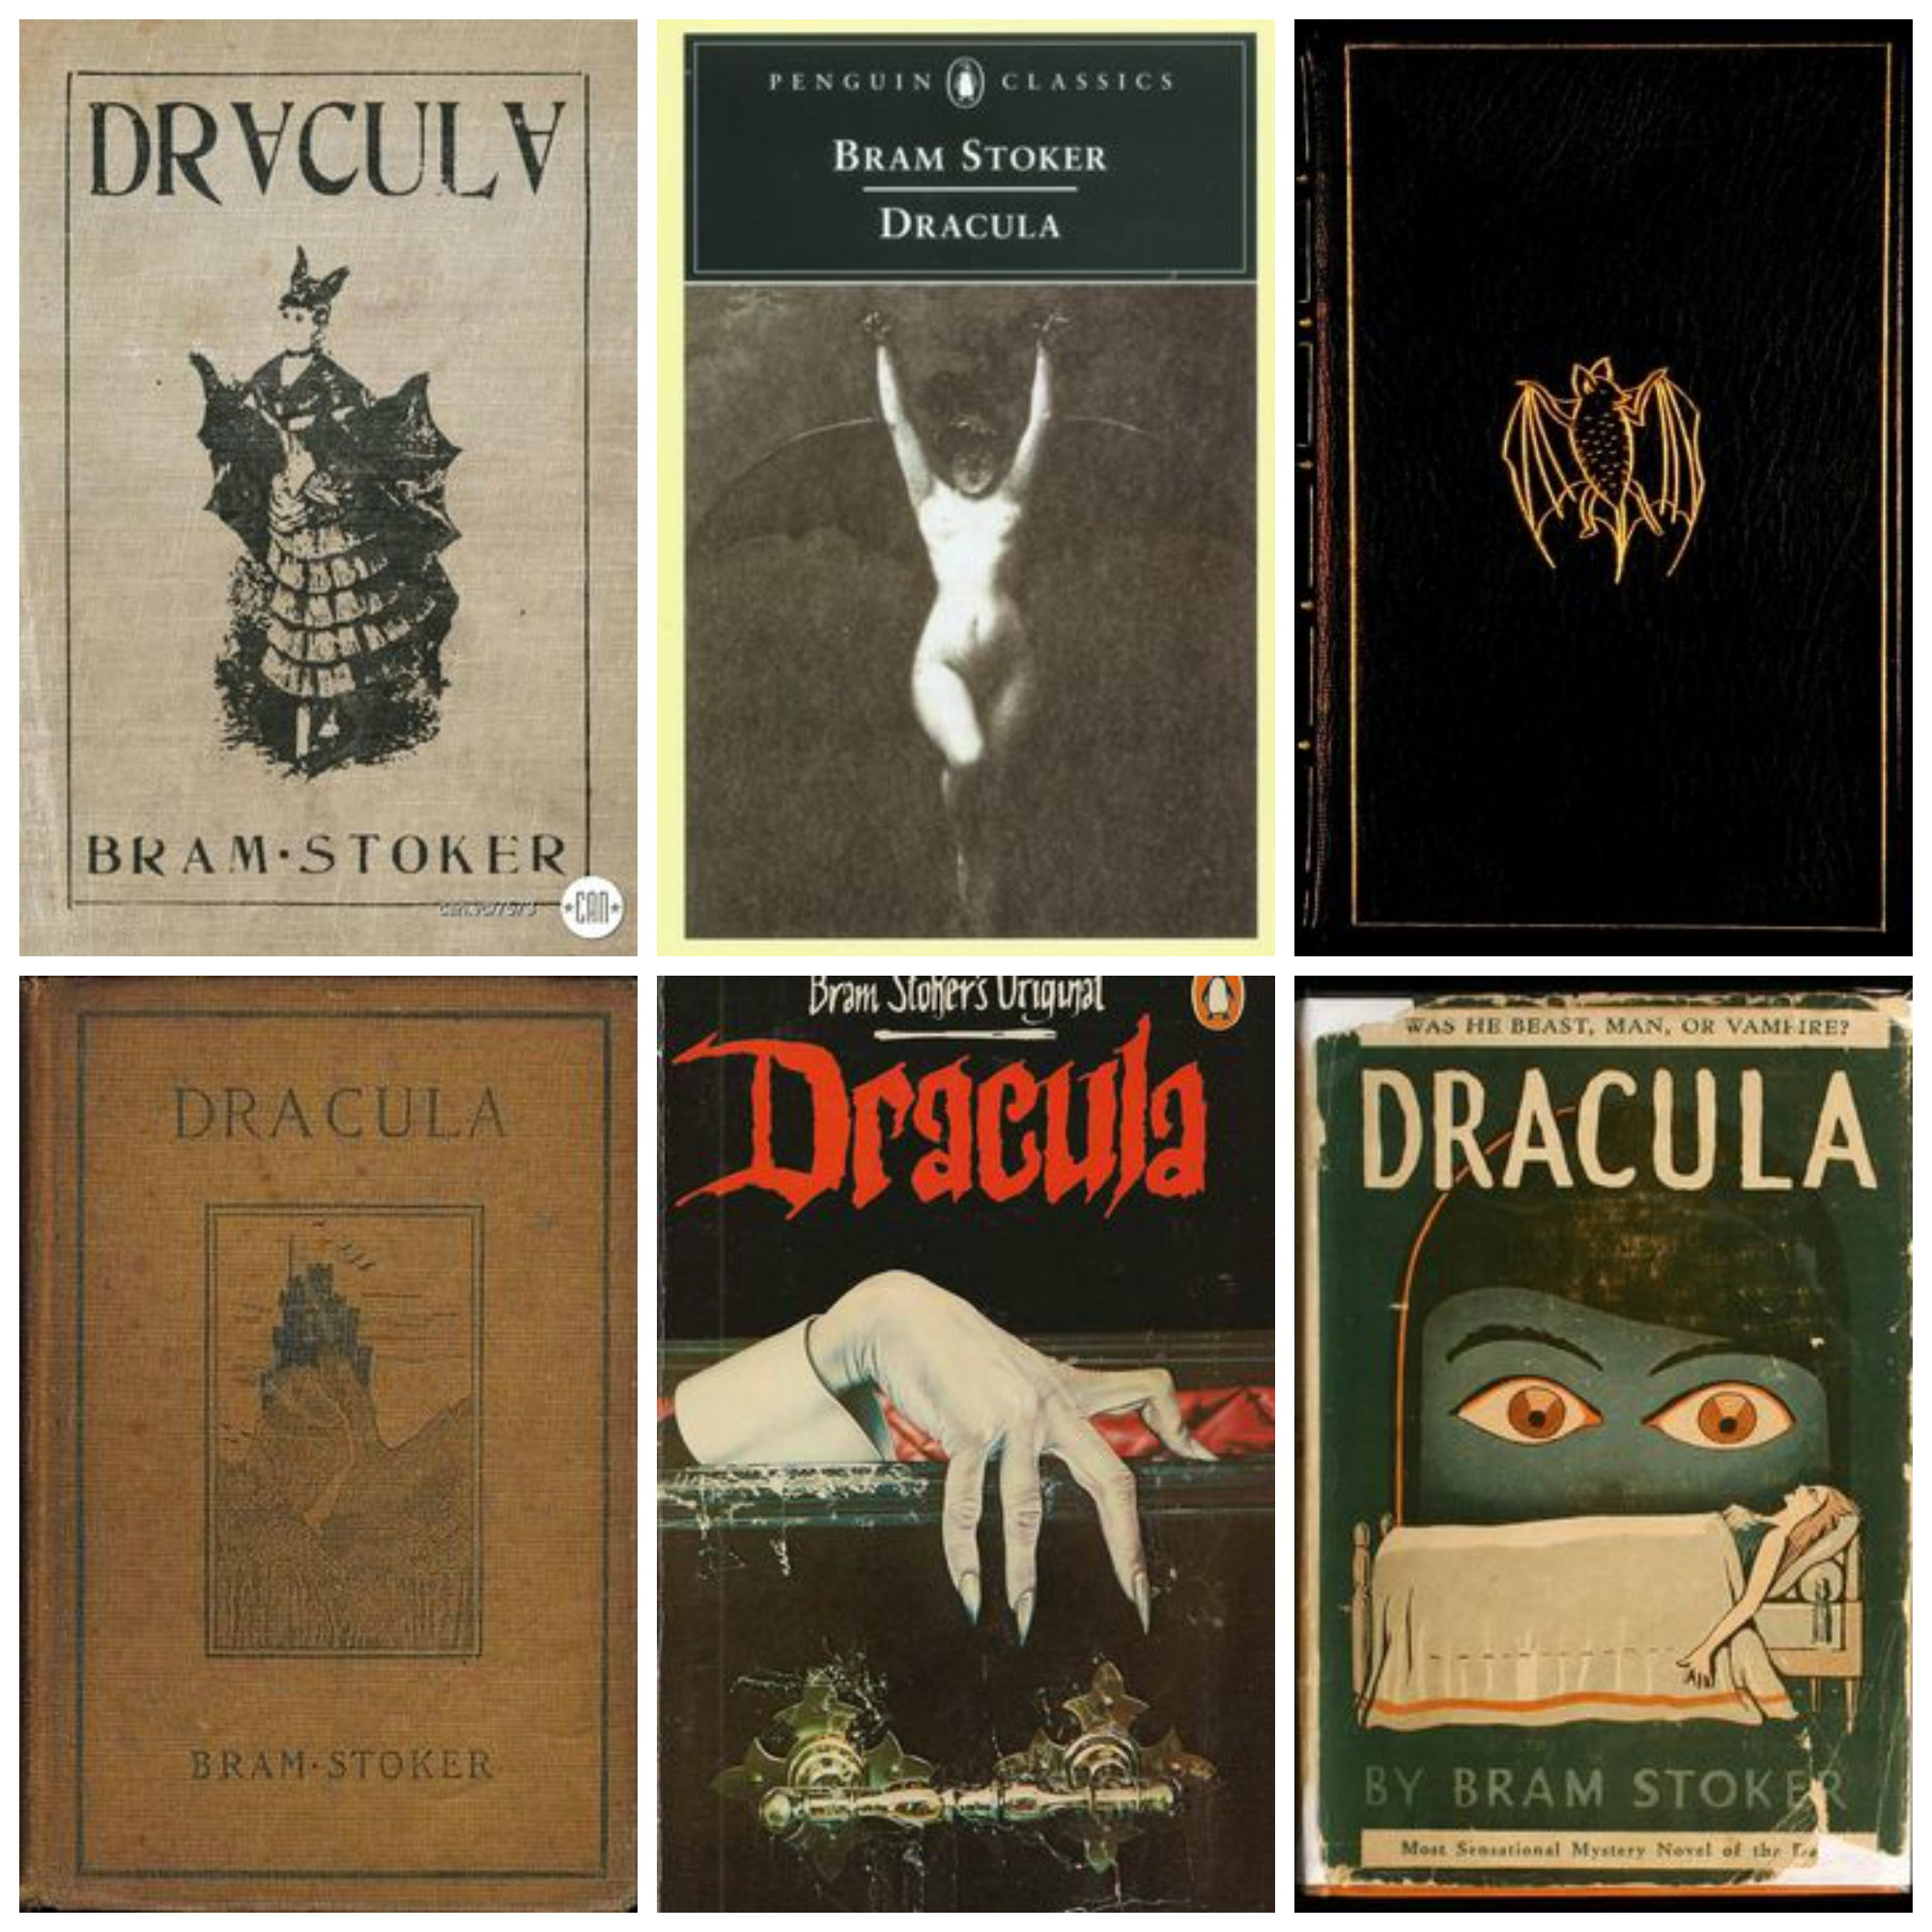 bram stoker dracula research paper Bram stoker, the author of dracula, died on april 20 1912 at the age of 64 began working regularly for the paper as part of the literary staff from 1905 until.